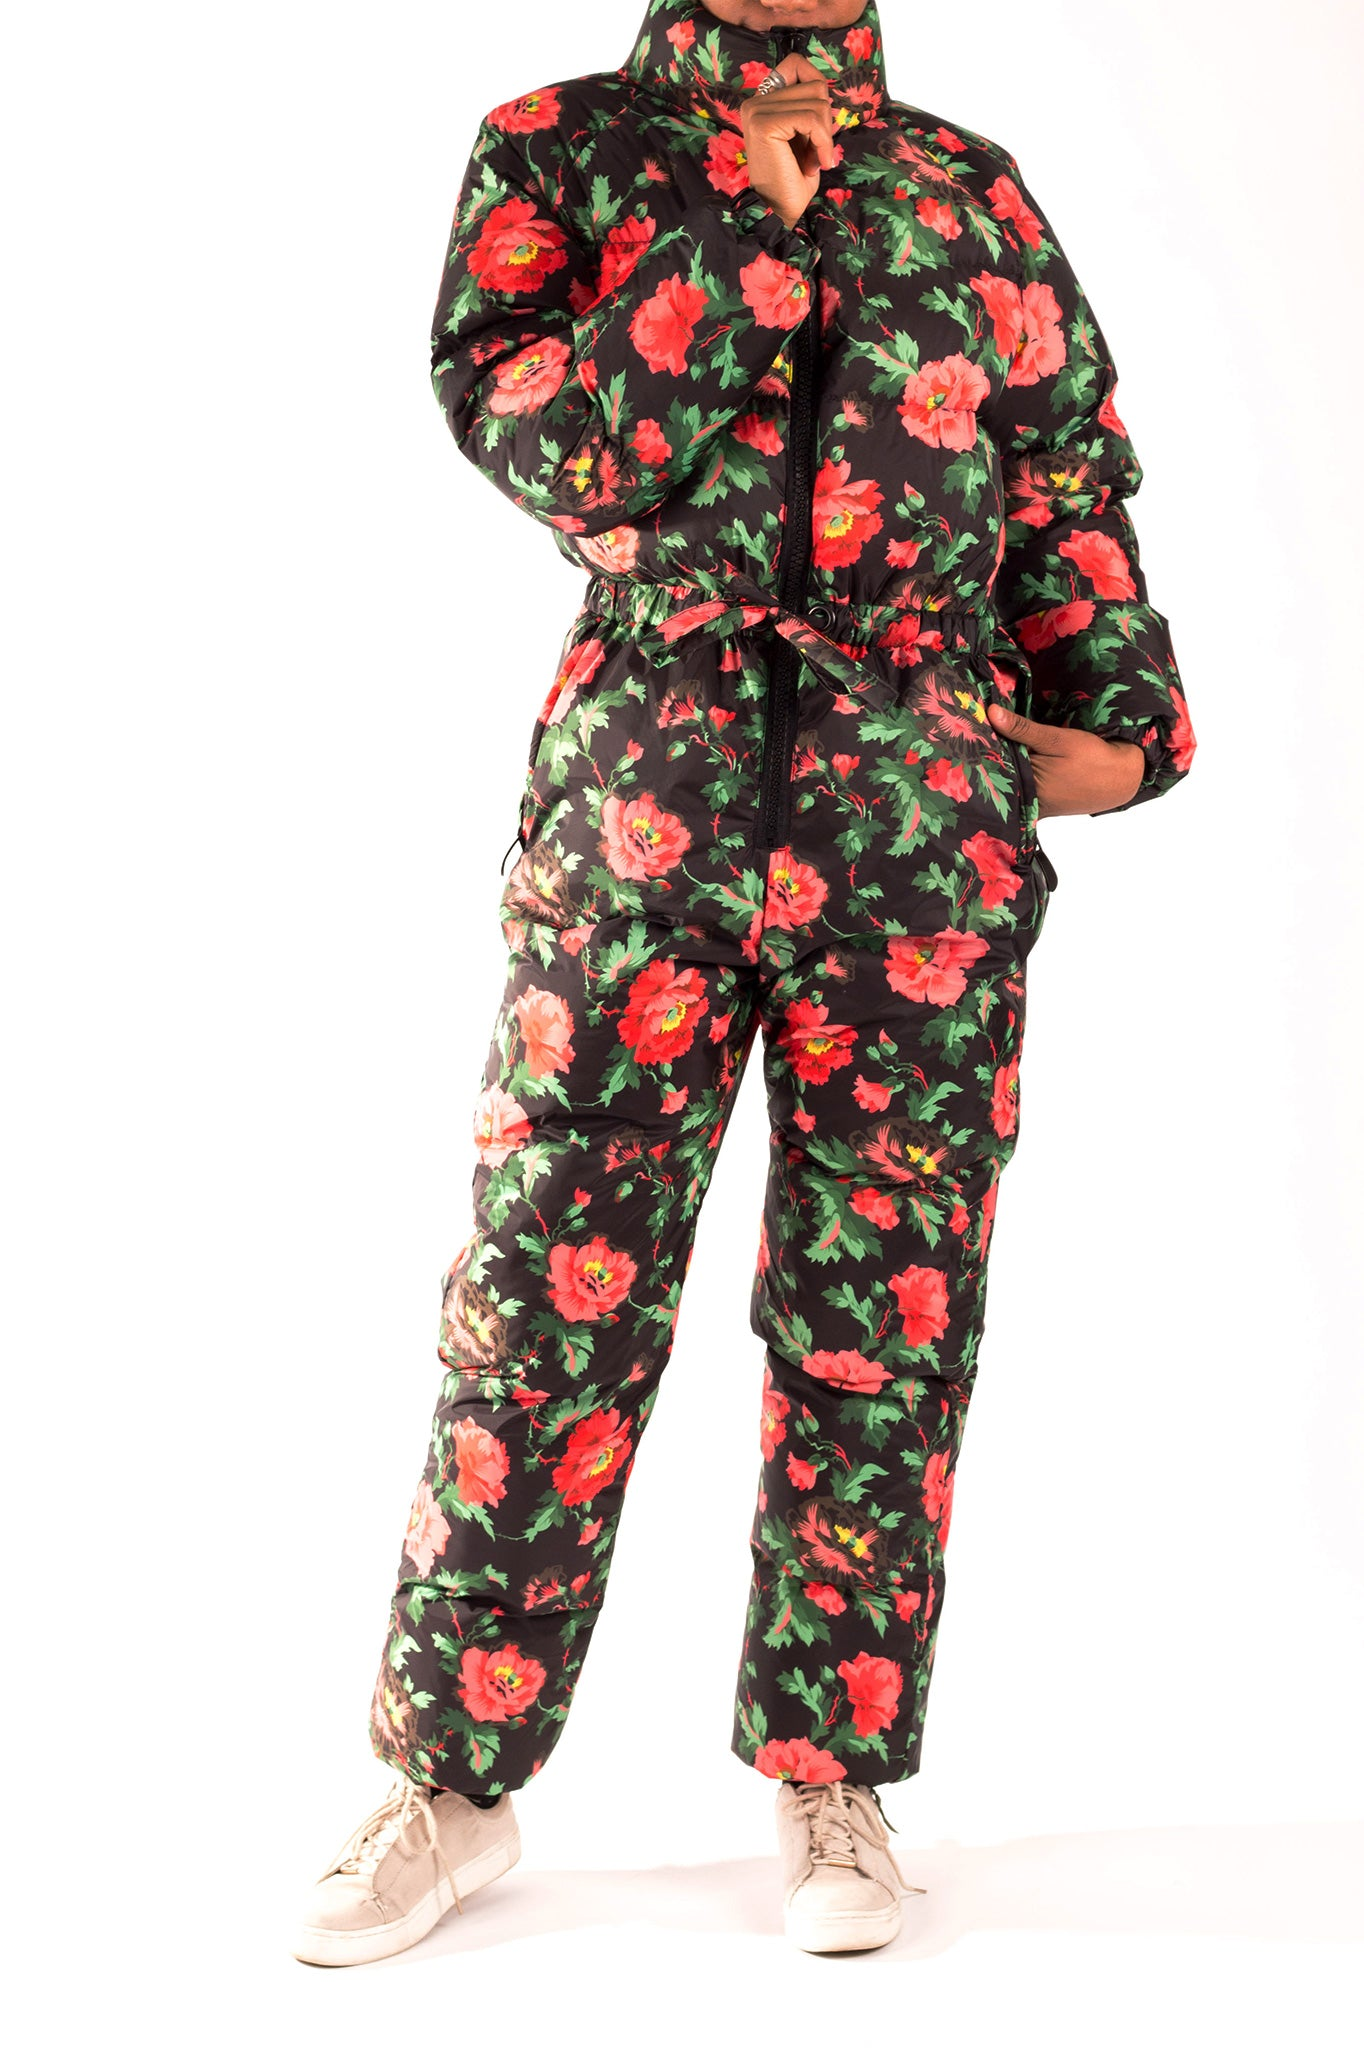 Female model wearing Floral Snow Jump suit